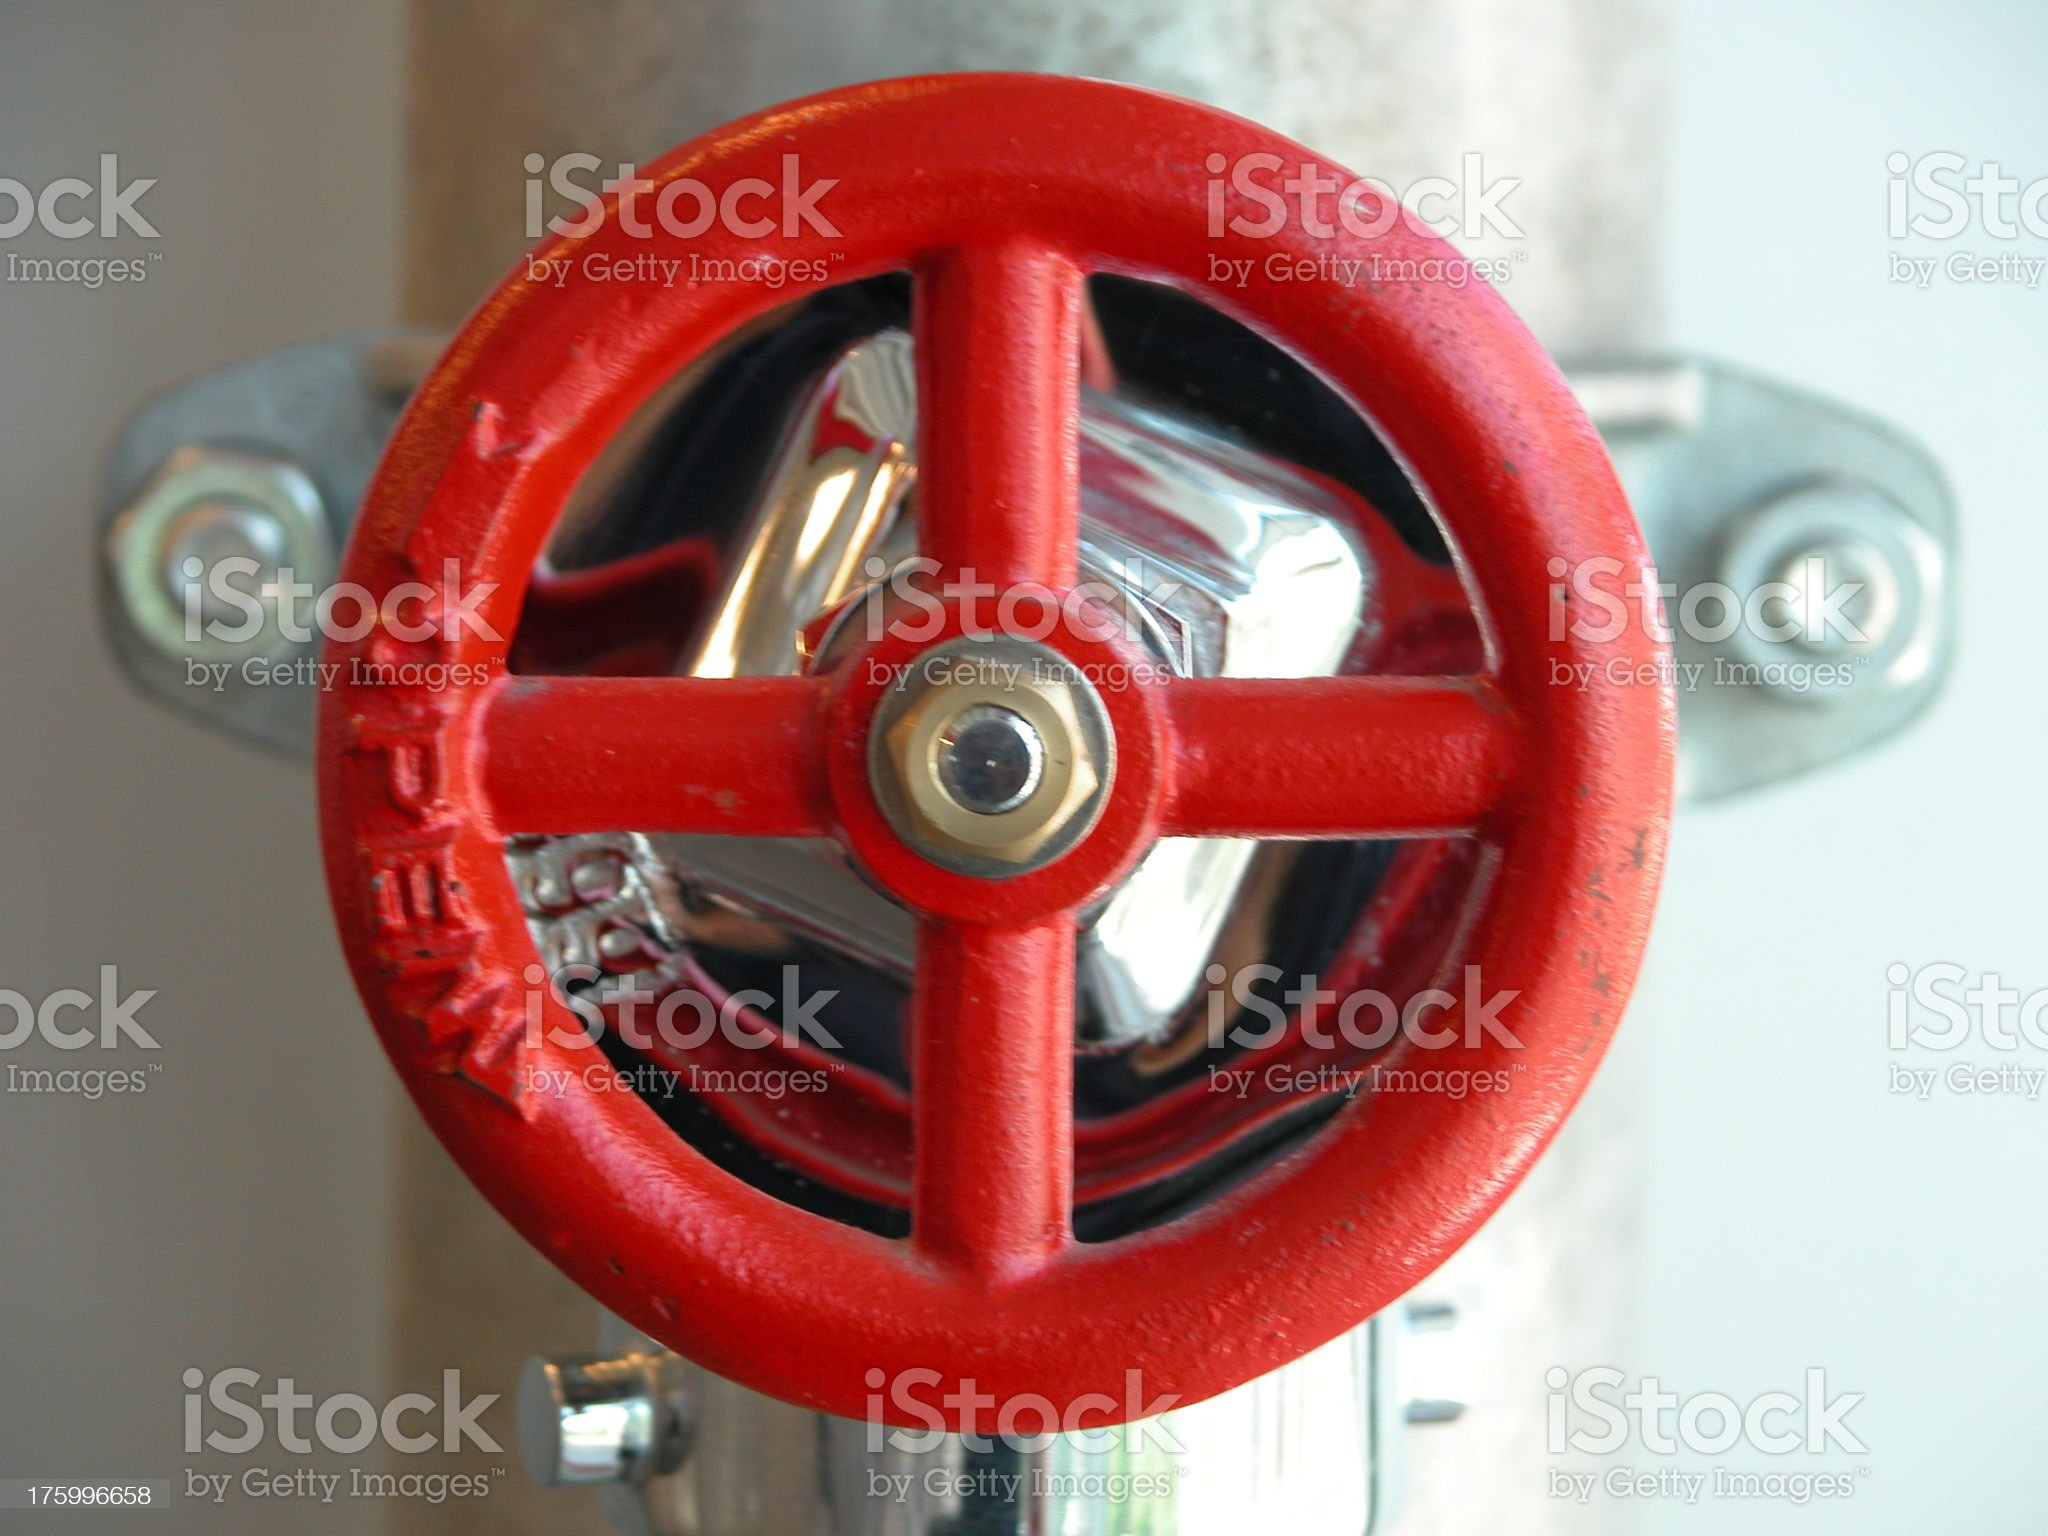 Water Valve for Fire Hose royalty-free stock photo